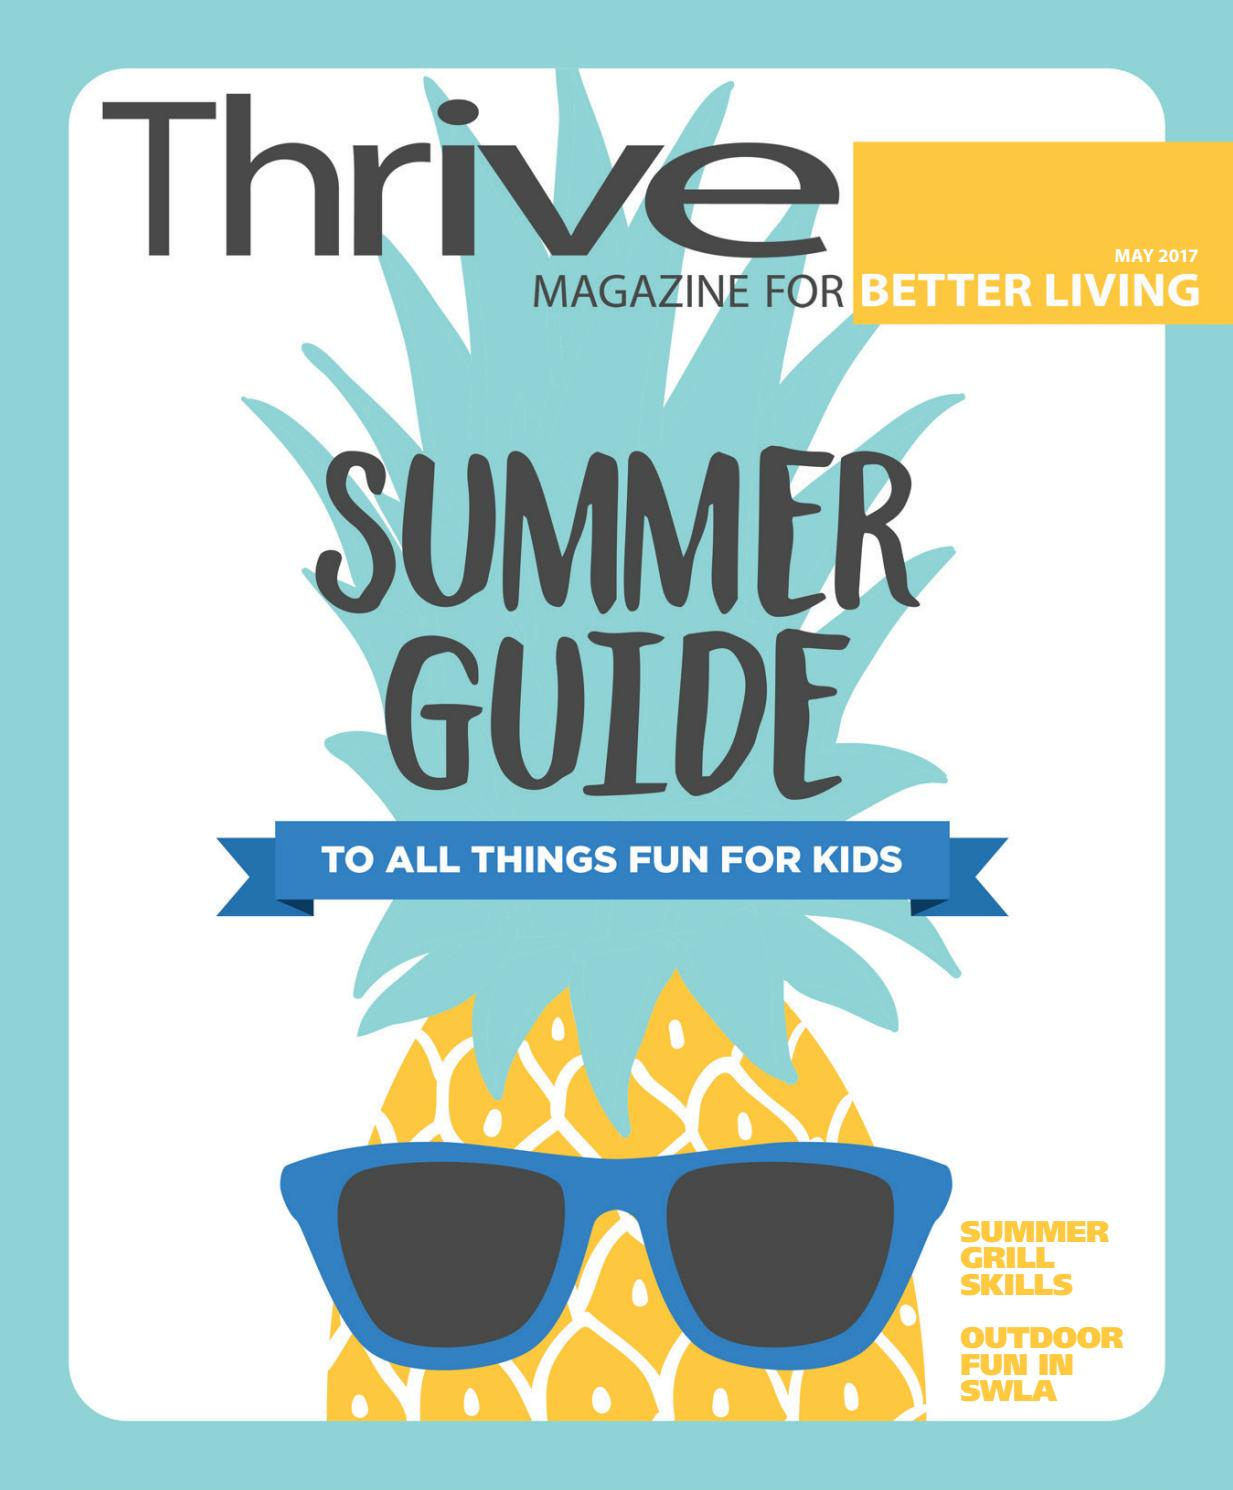 Thrive May 2017 Issue by Thrive Magazine - issuu